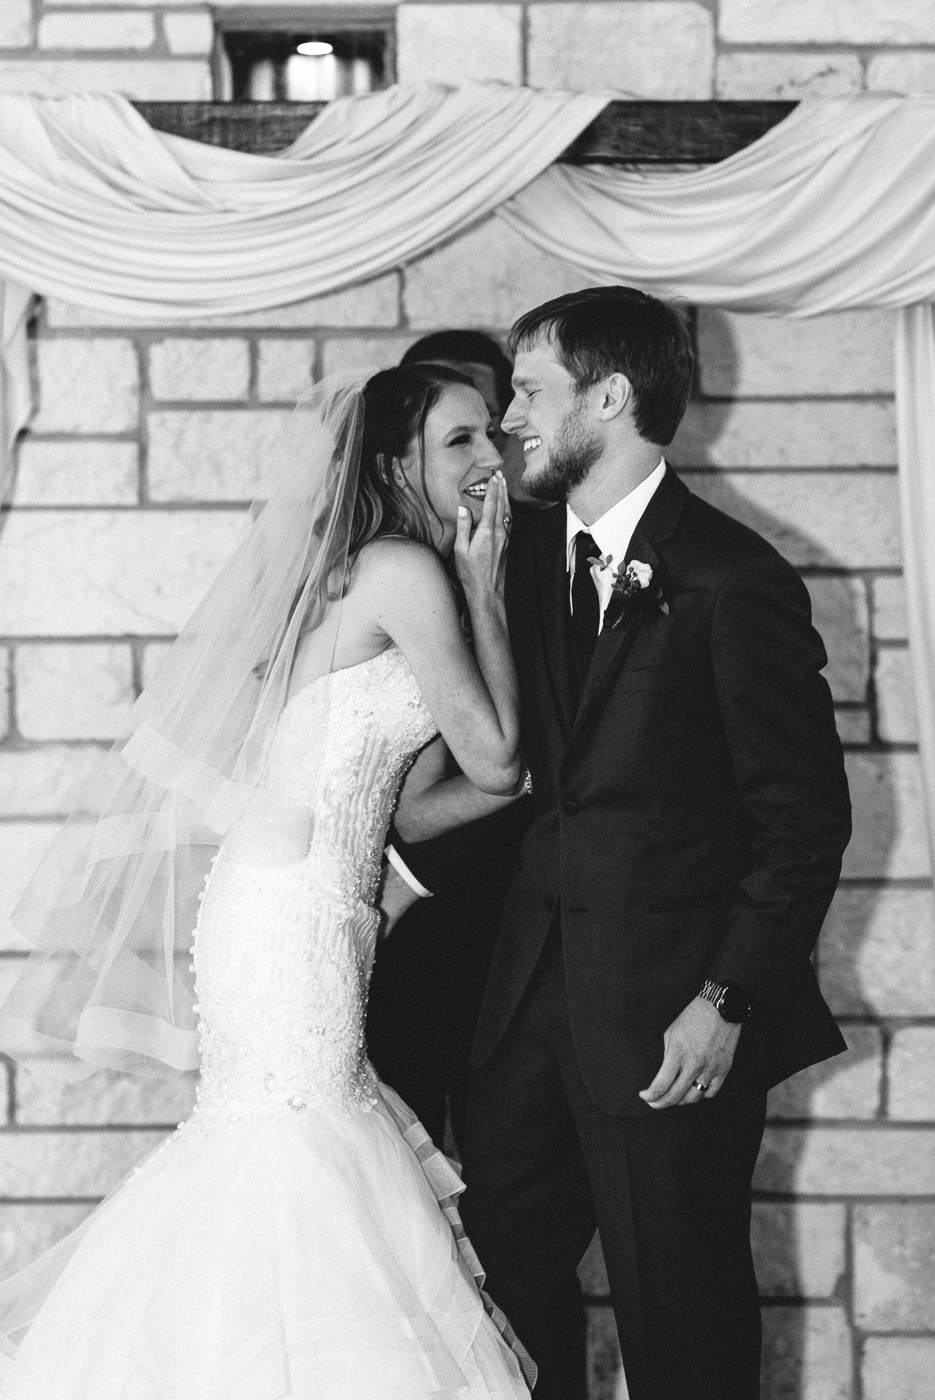 wedding ceremony black and white first kiss bride and groom wedding ceremony